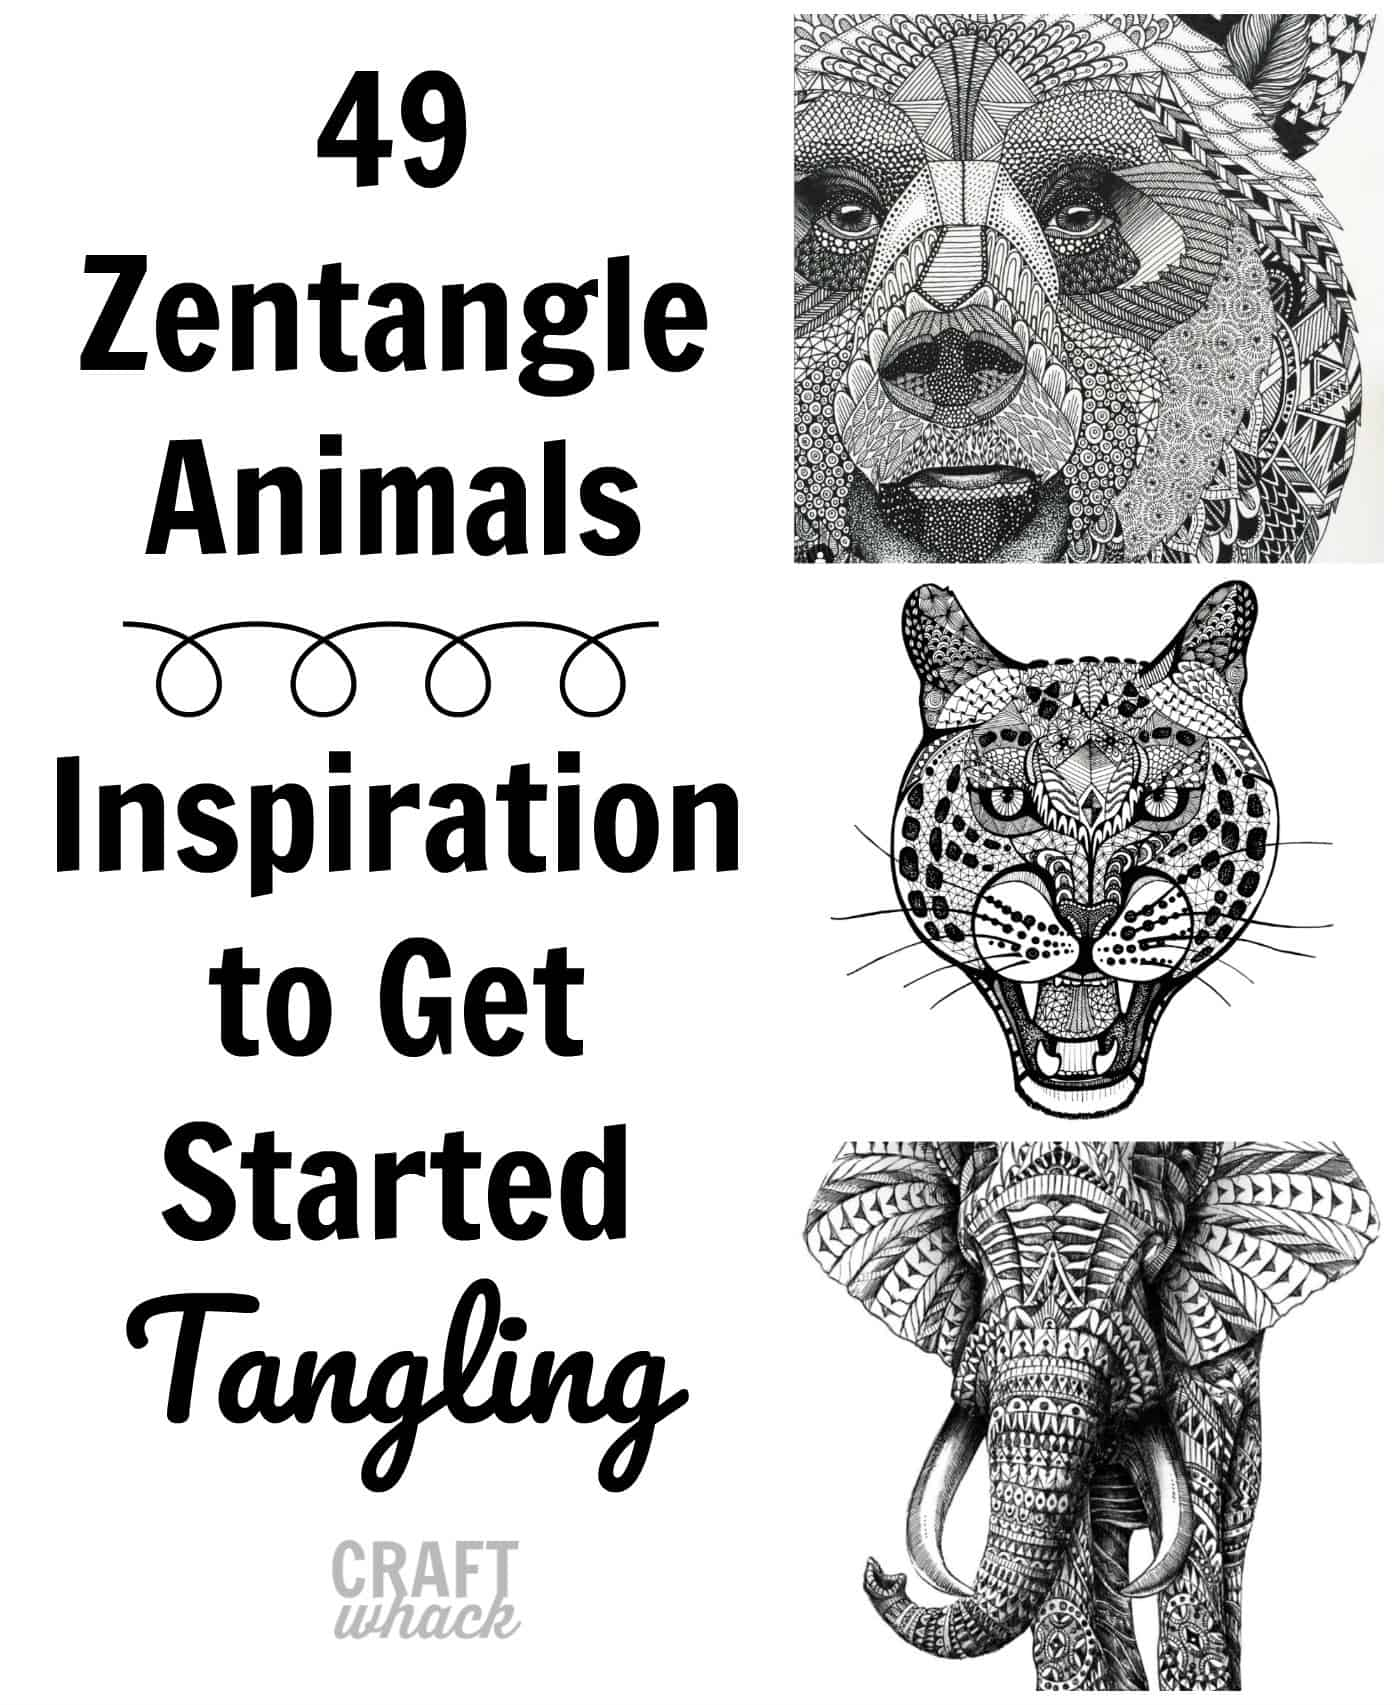 zentangle animal ideas